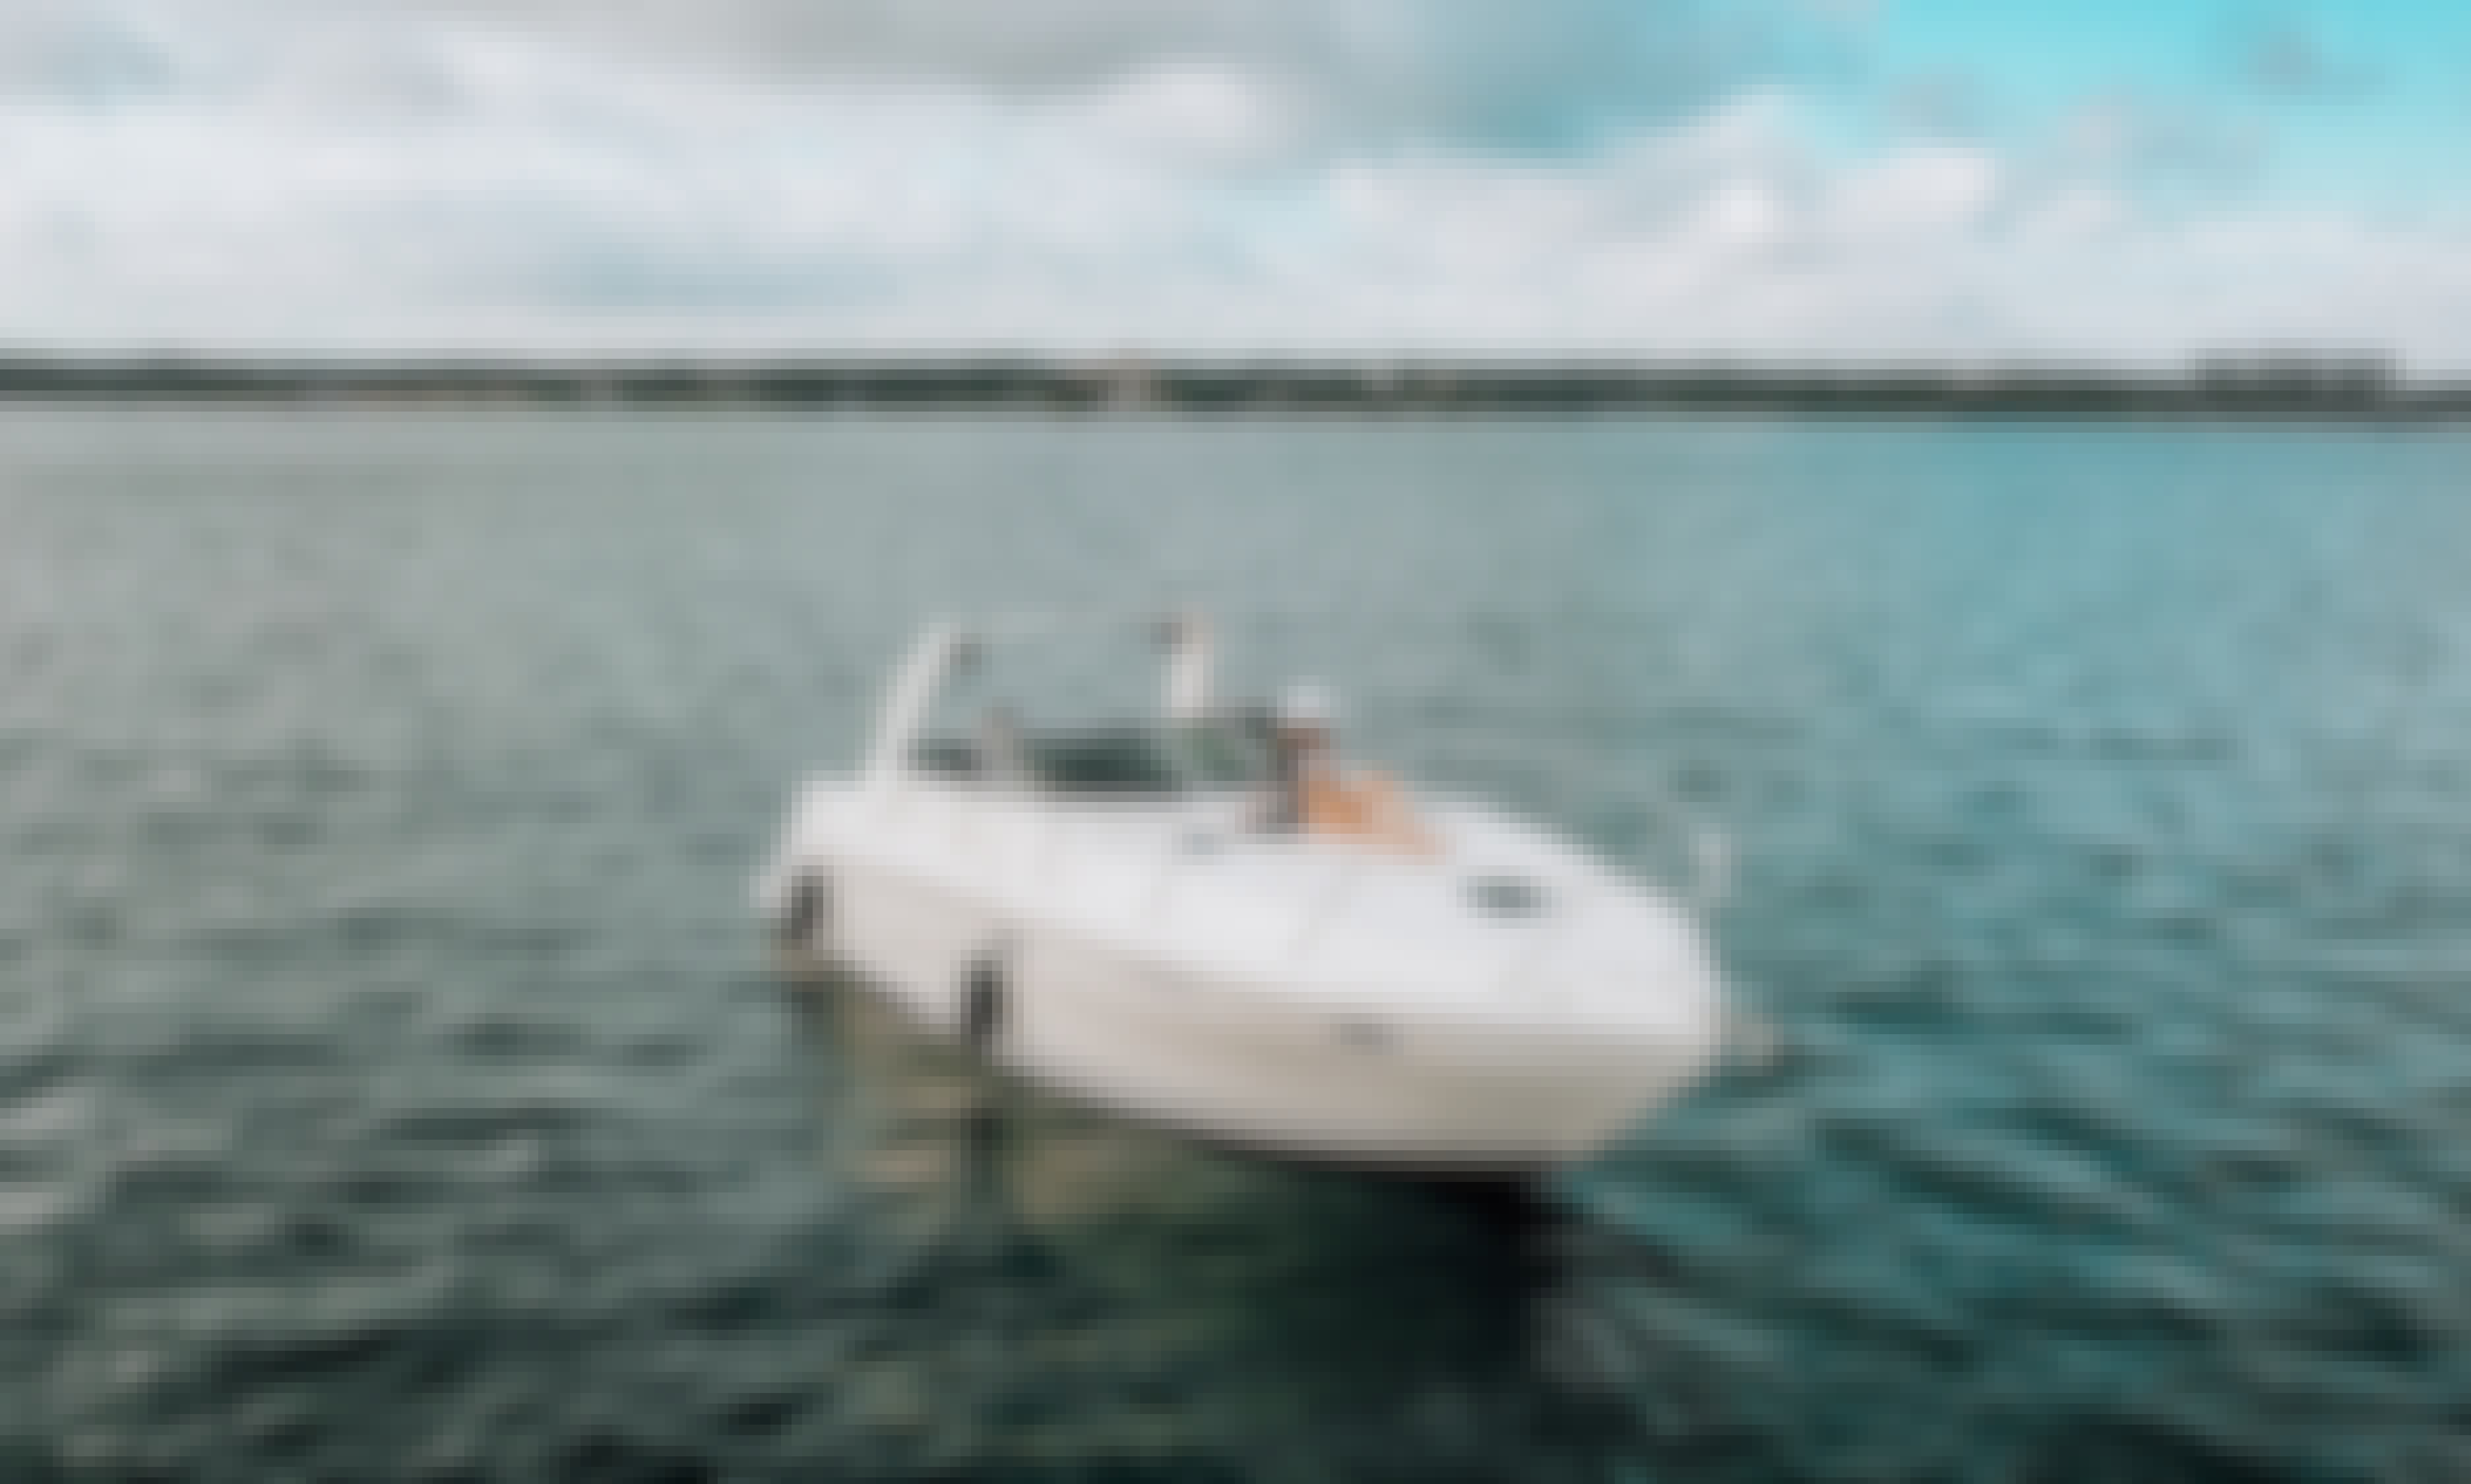 Rinker 310 Yacht for rent on Lake Travis!